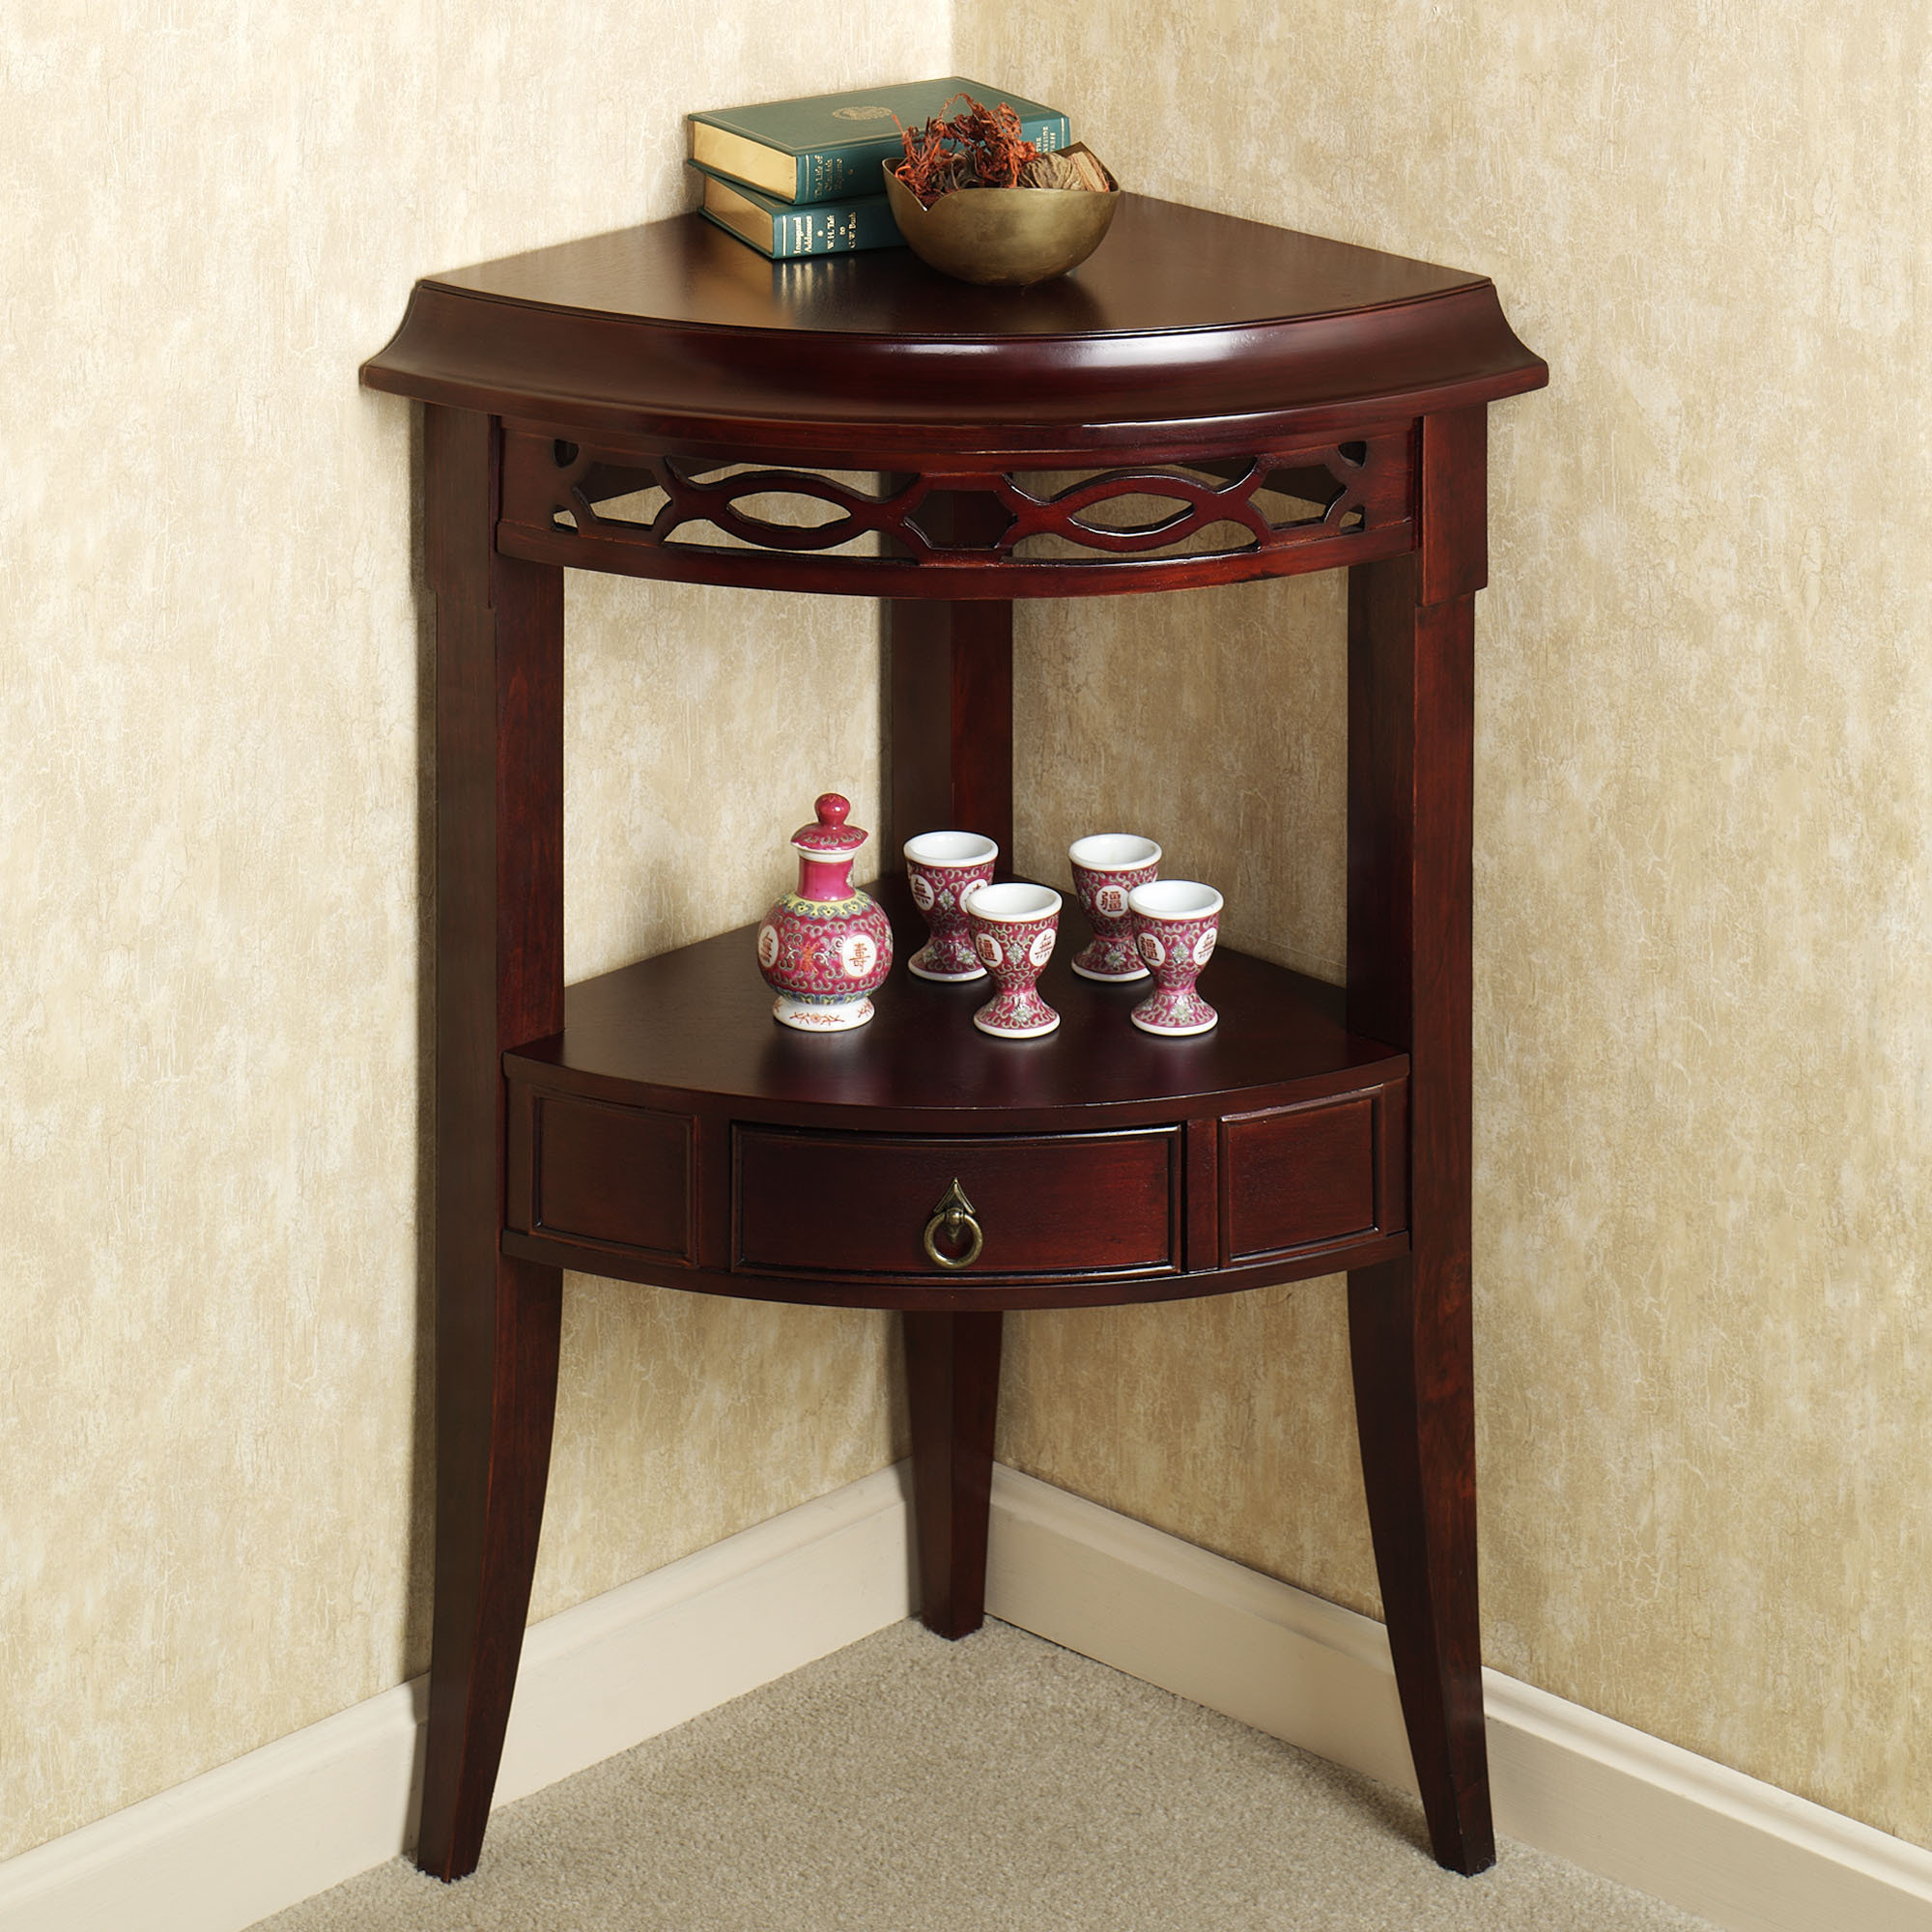 various options for corner accent table design gestablishment home furniture small cherry wood end tables ideas ashley brown couch young america ethan allen british classics low